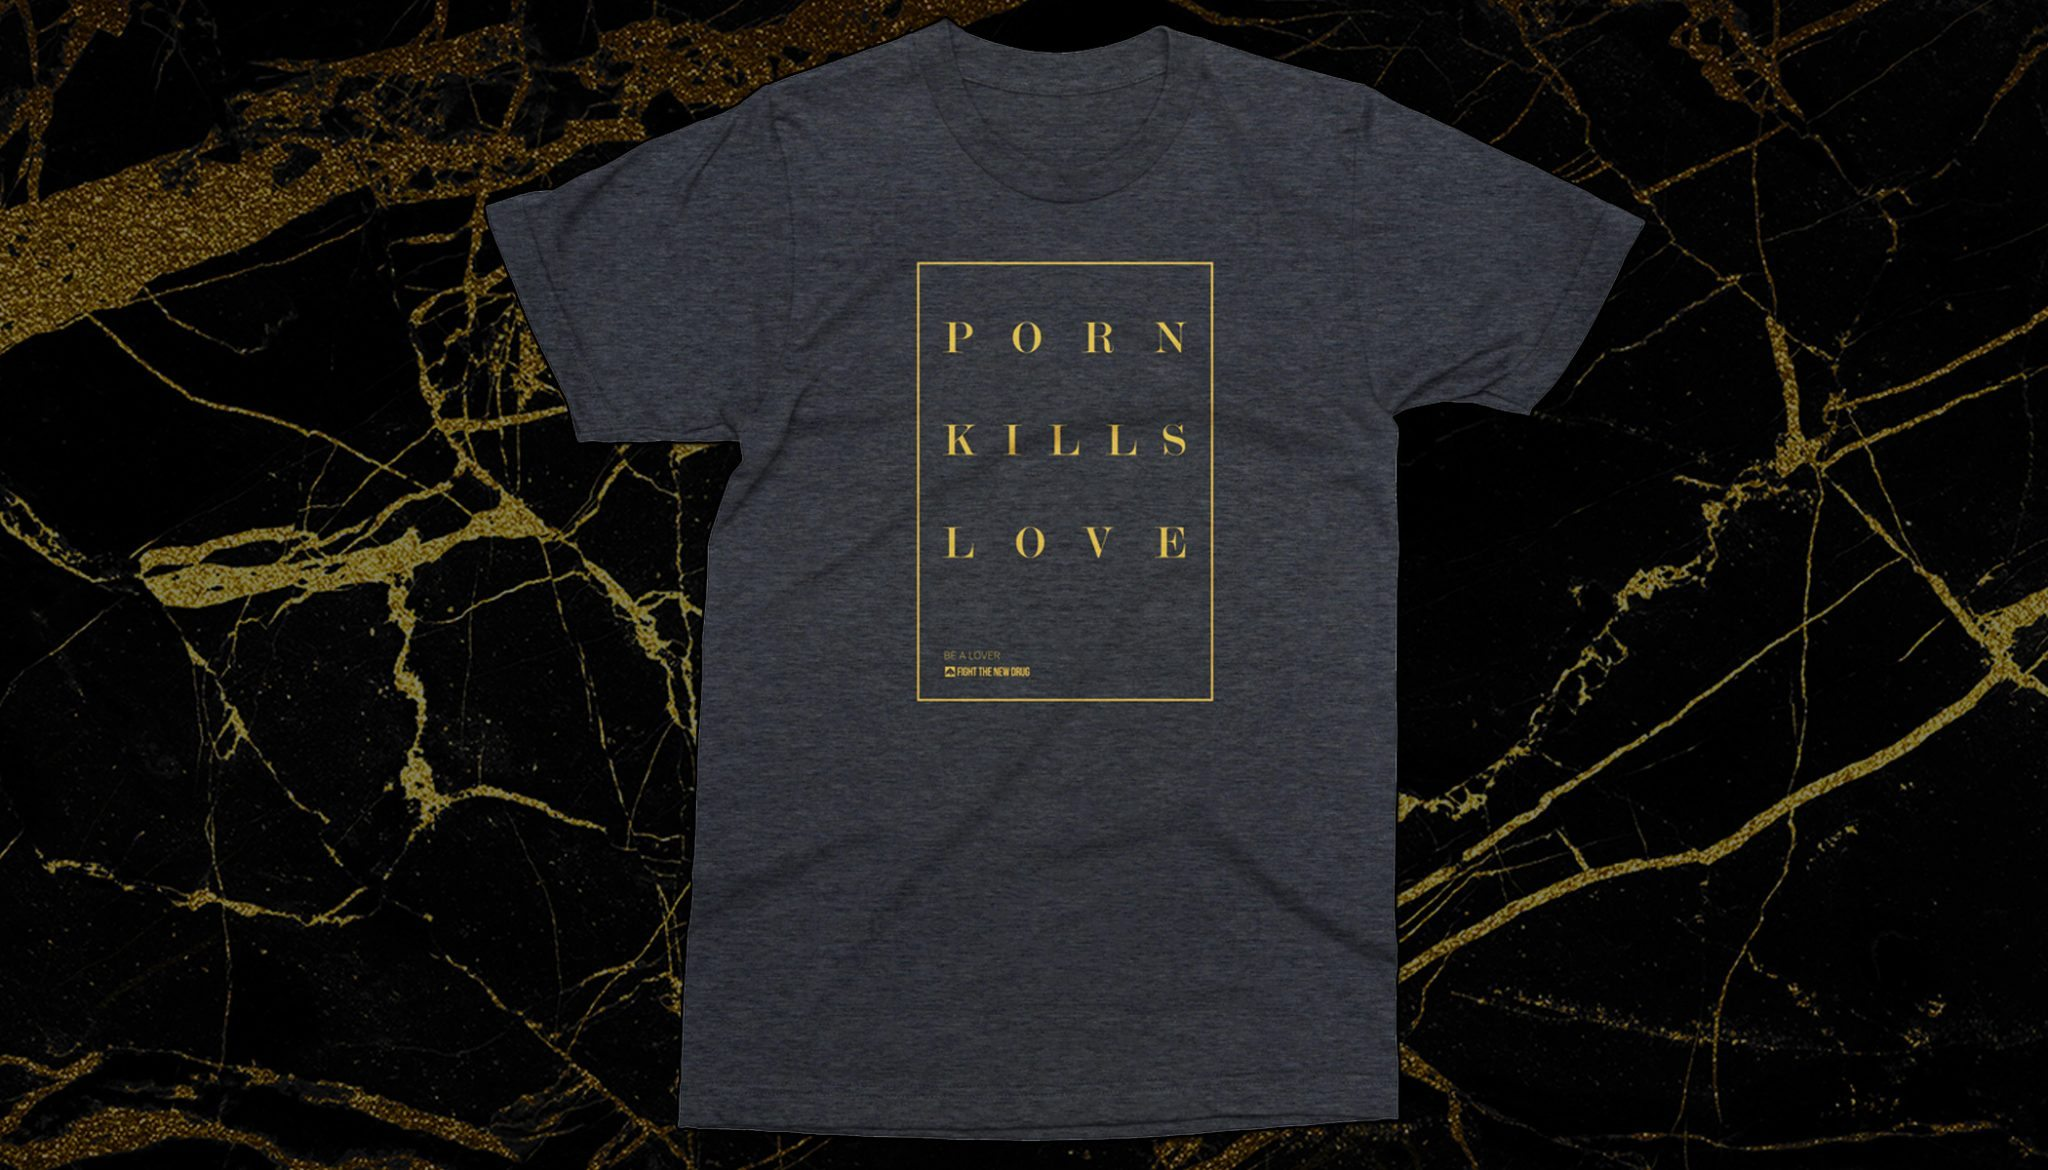 Limited Edition #NoPornovember 'Porn Kills Love' Tee – Charcoal/Metallic Gold